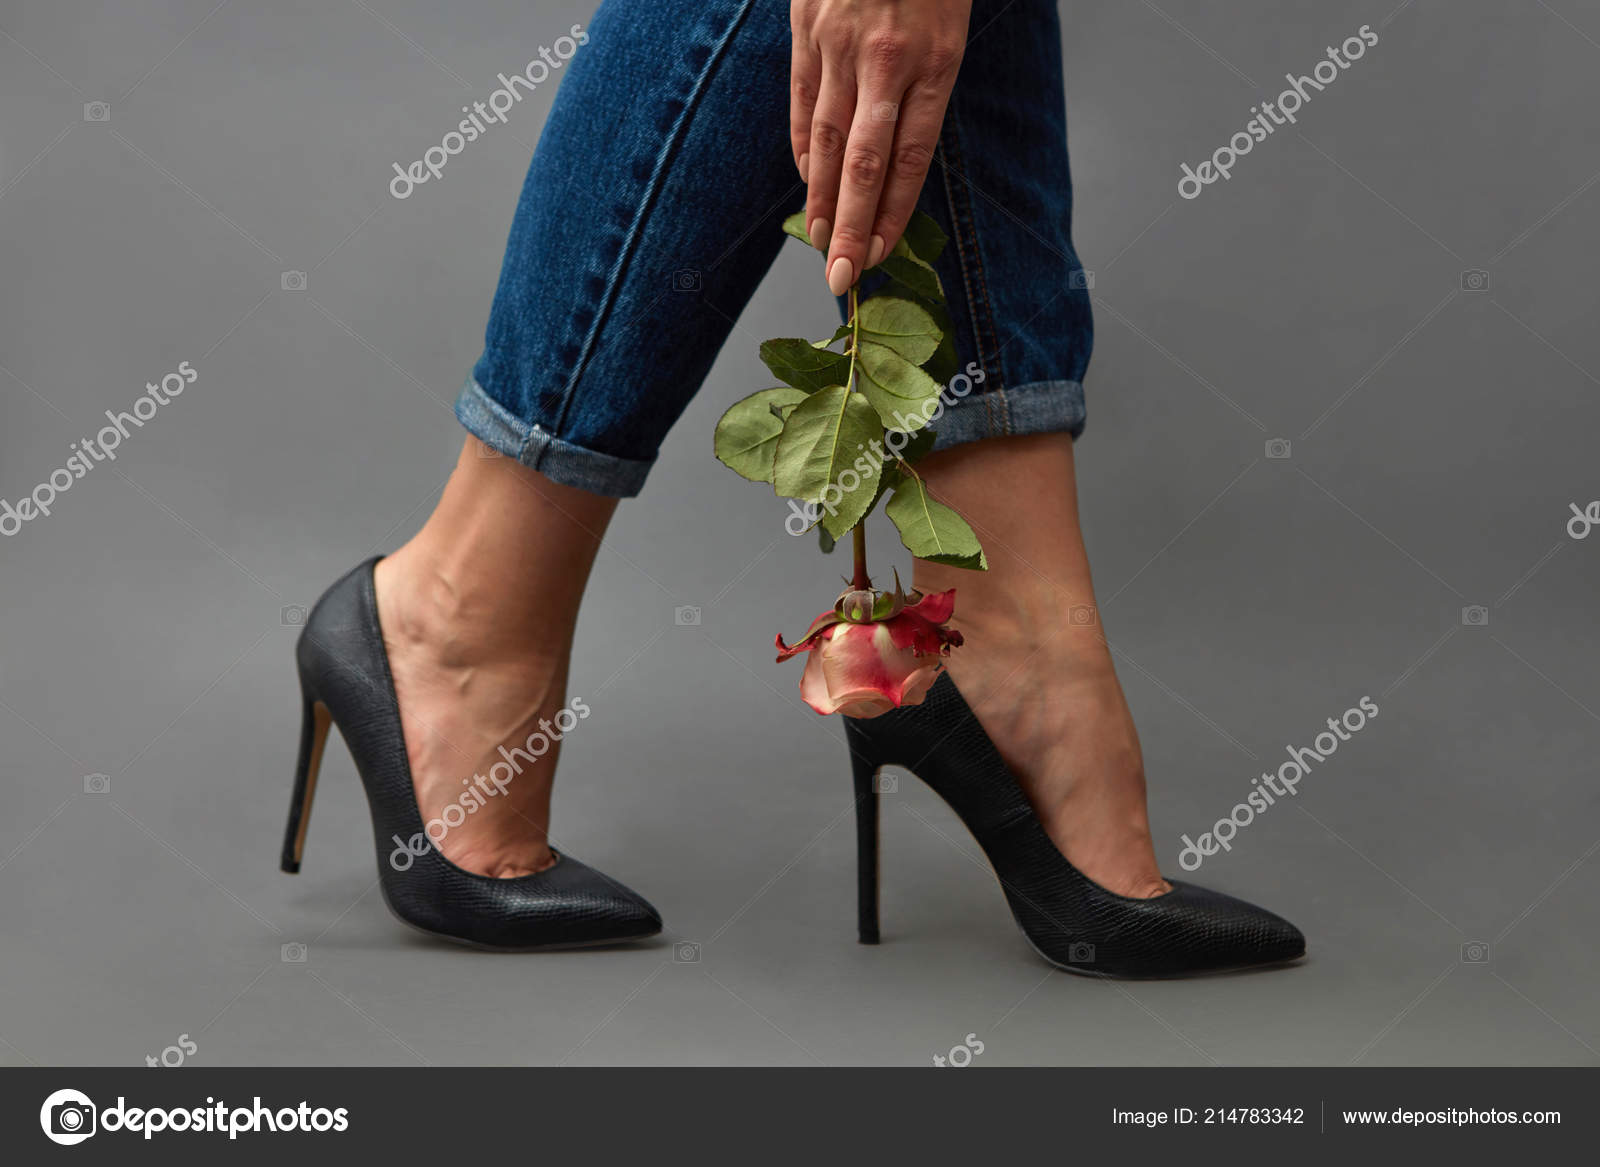 140a21a8aaf Legs of a woman in jeans and black high-heeled shoes next to a girl's hand  holds a pink rose around a dark background with space for text.